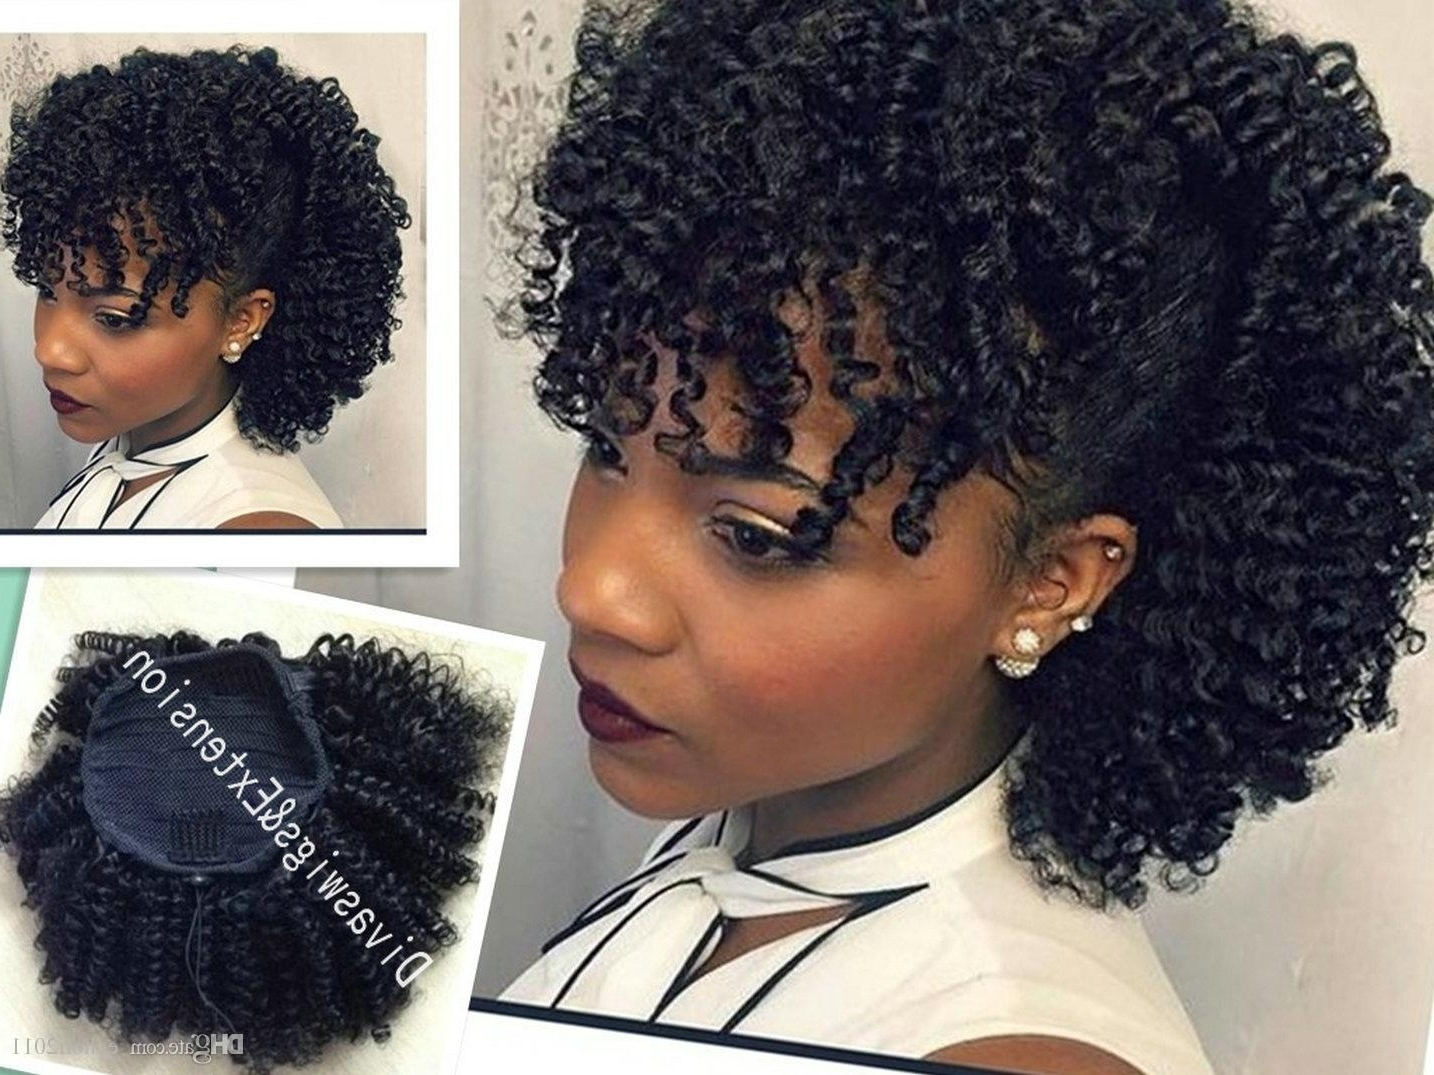 Widely Used Afro Style Ponytail Hairstyles Inside Curly Weavon Hair